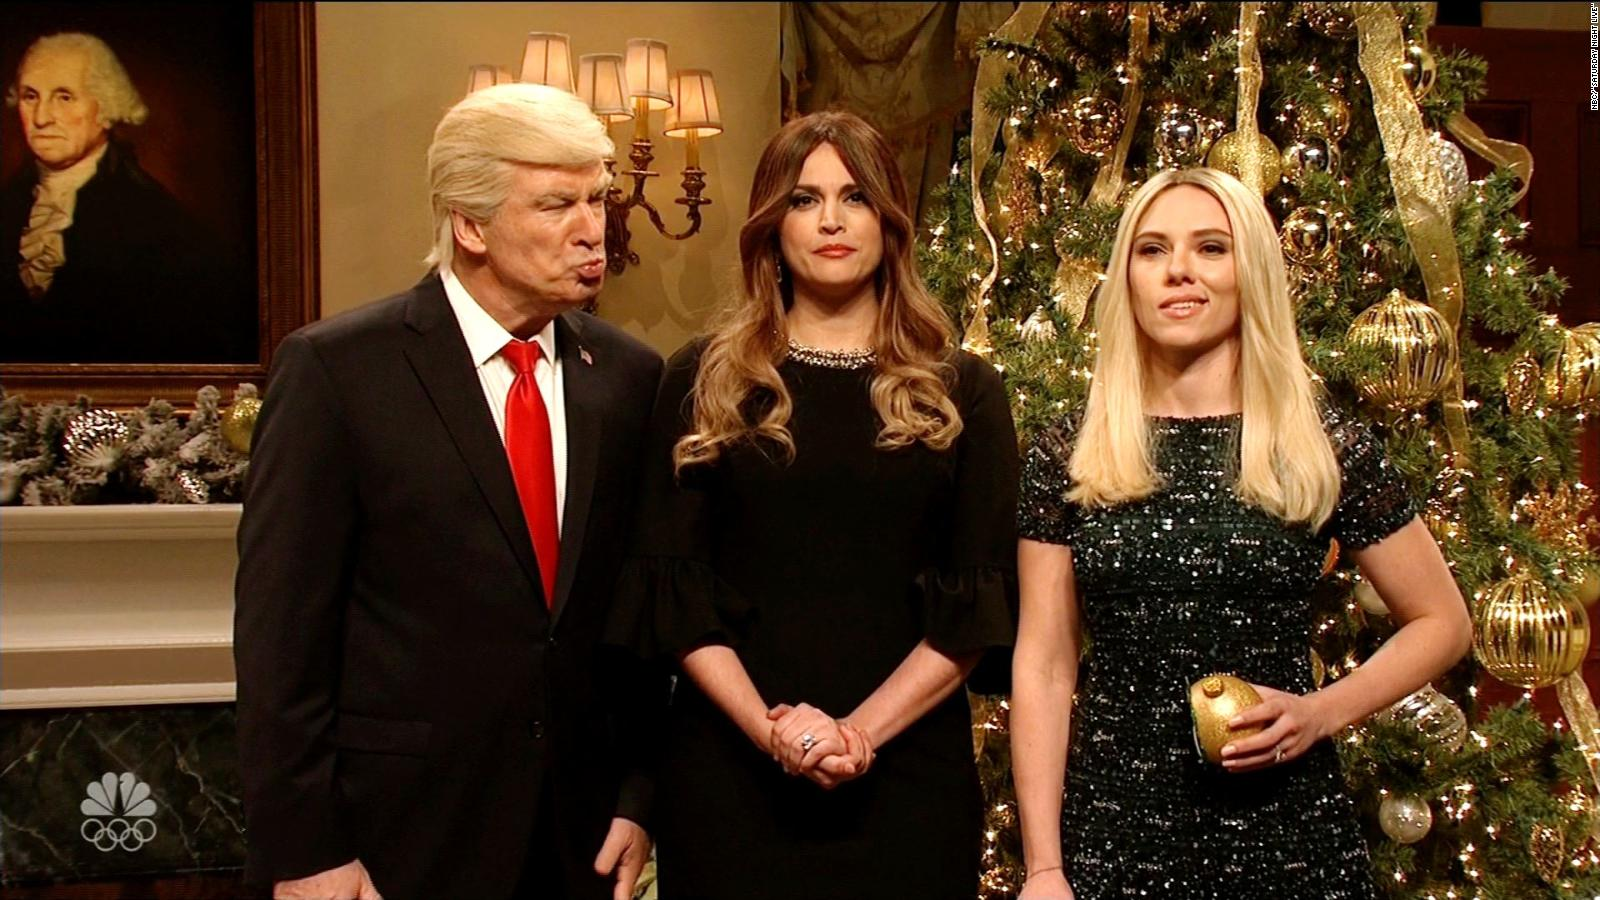 Snl trump trims christmas tree with losers cnn video snl trump trims christmas tree with losers cnn video m4hsunfo